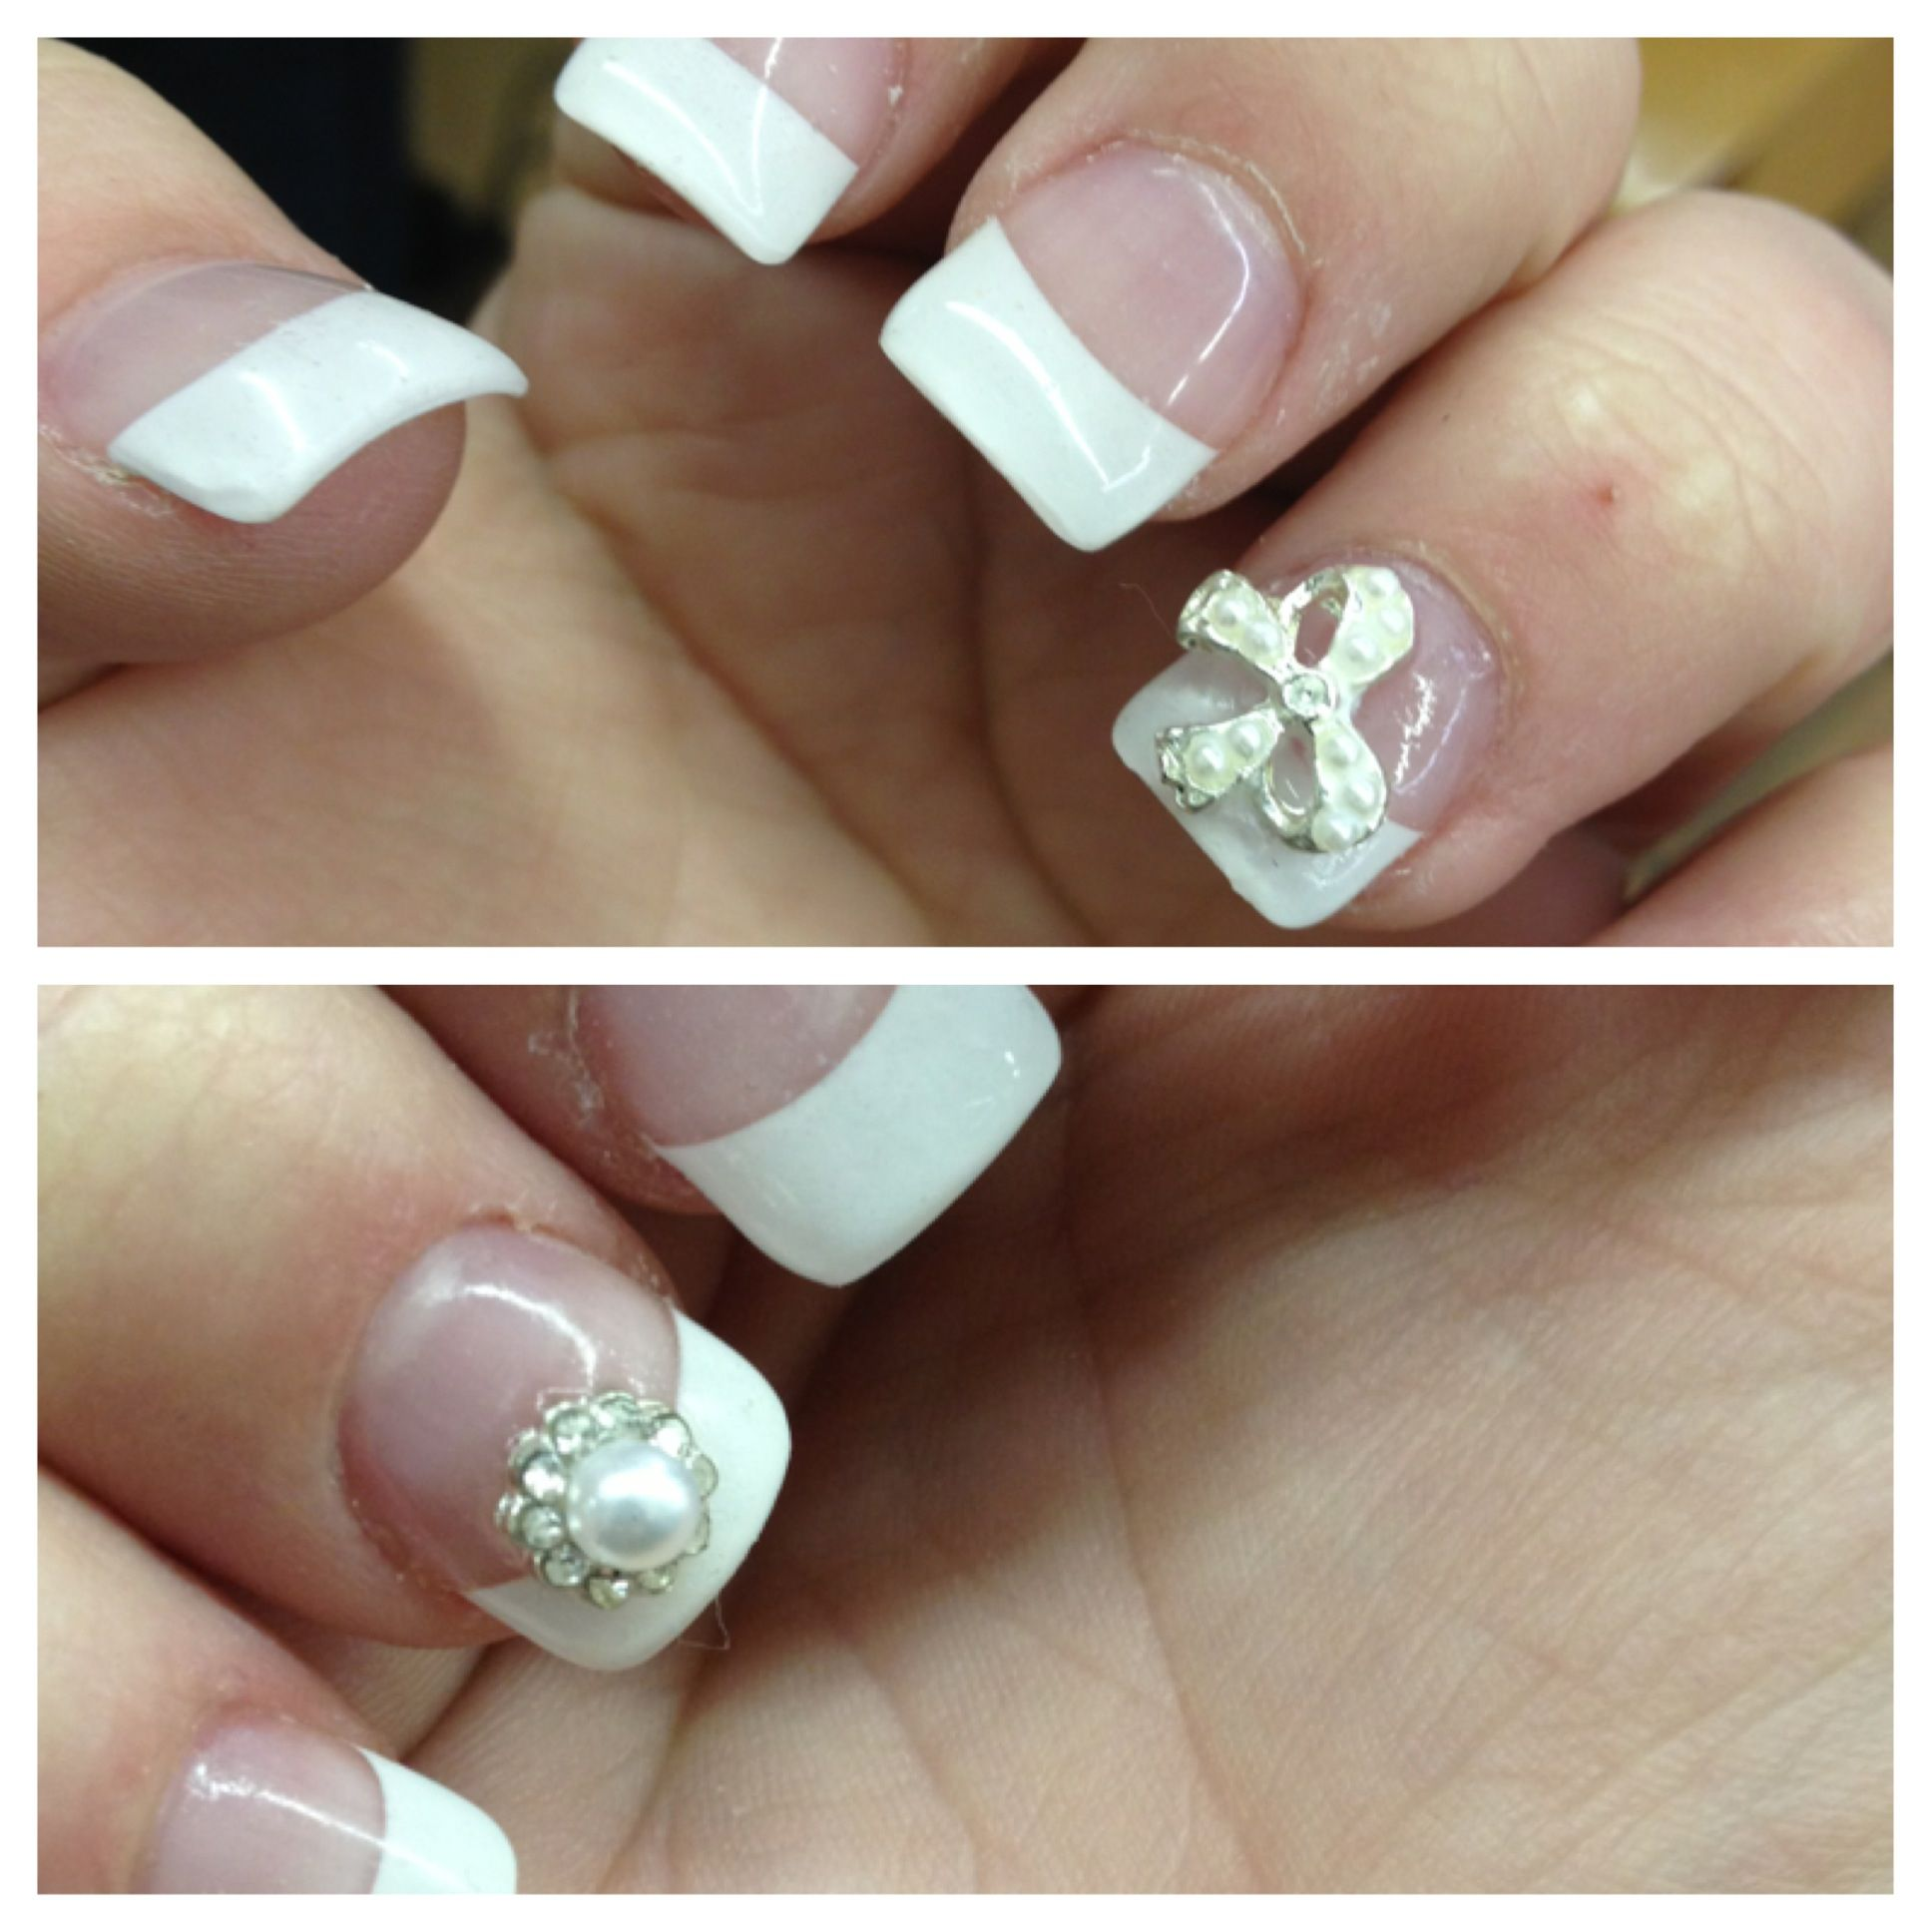 acrylic nails with white tips, nail jewel bow and pearl. - N a i l s ...